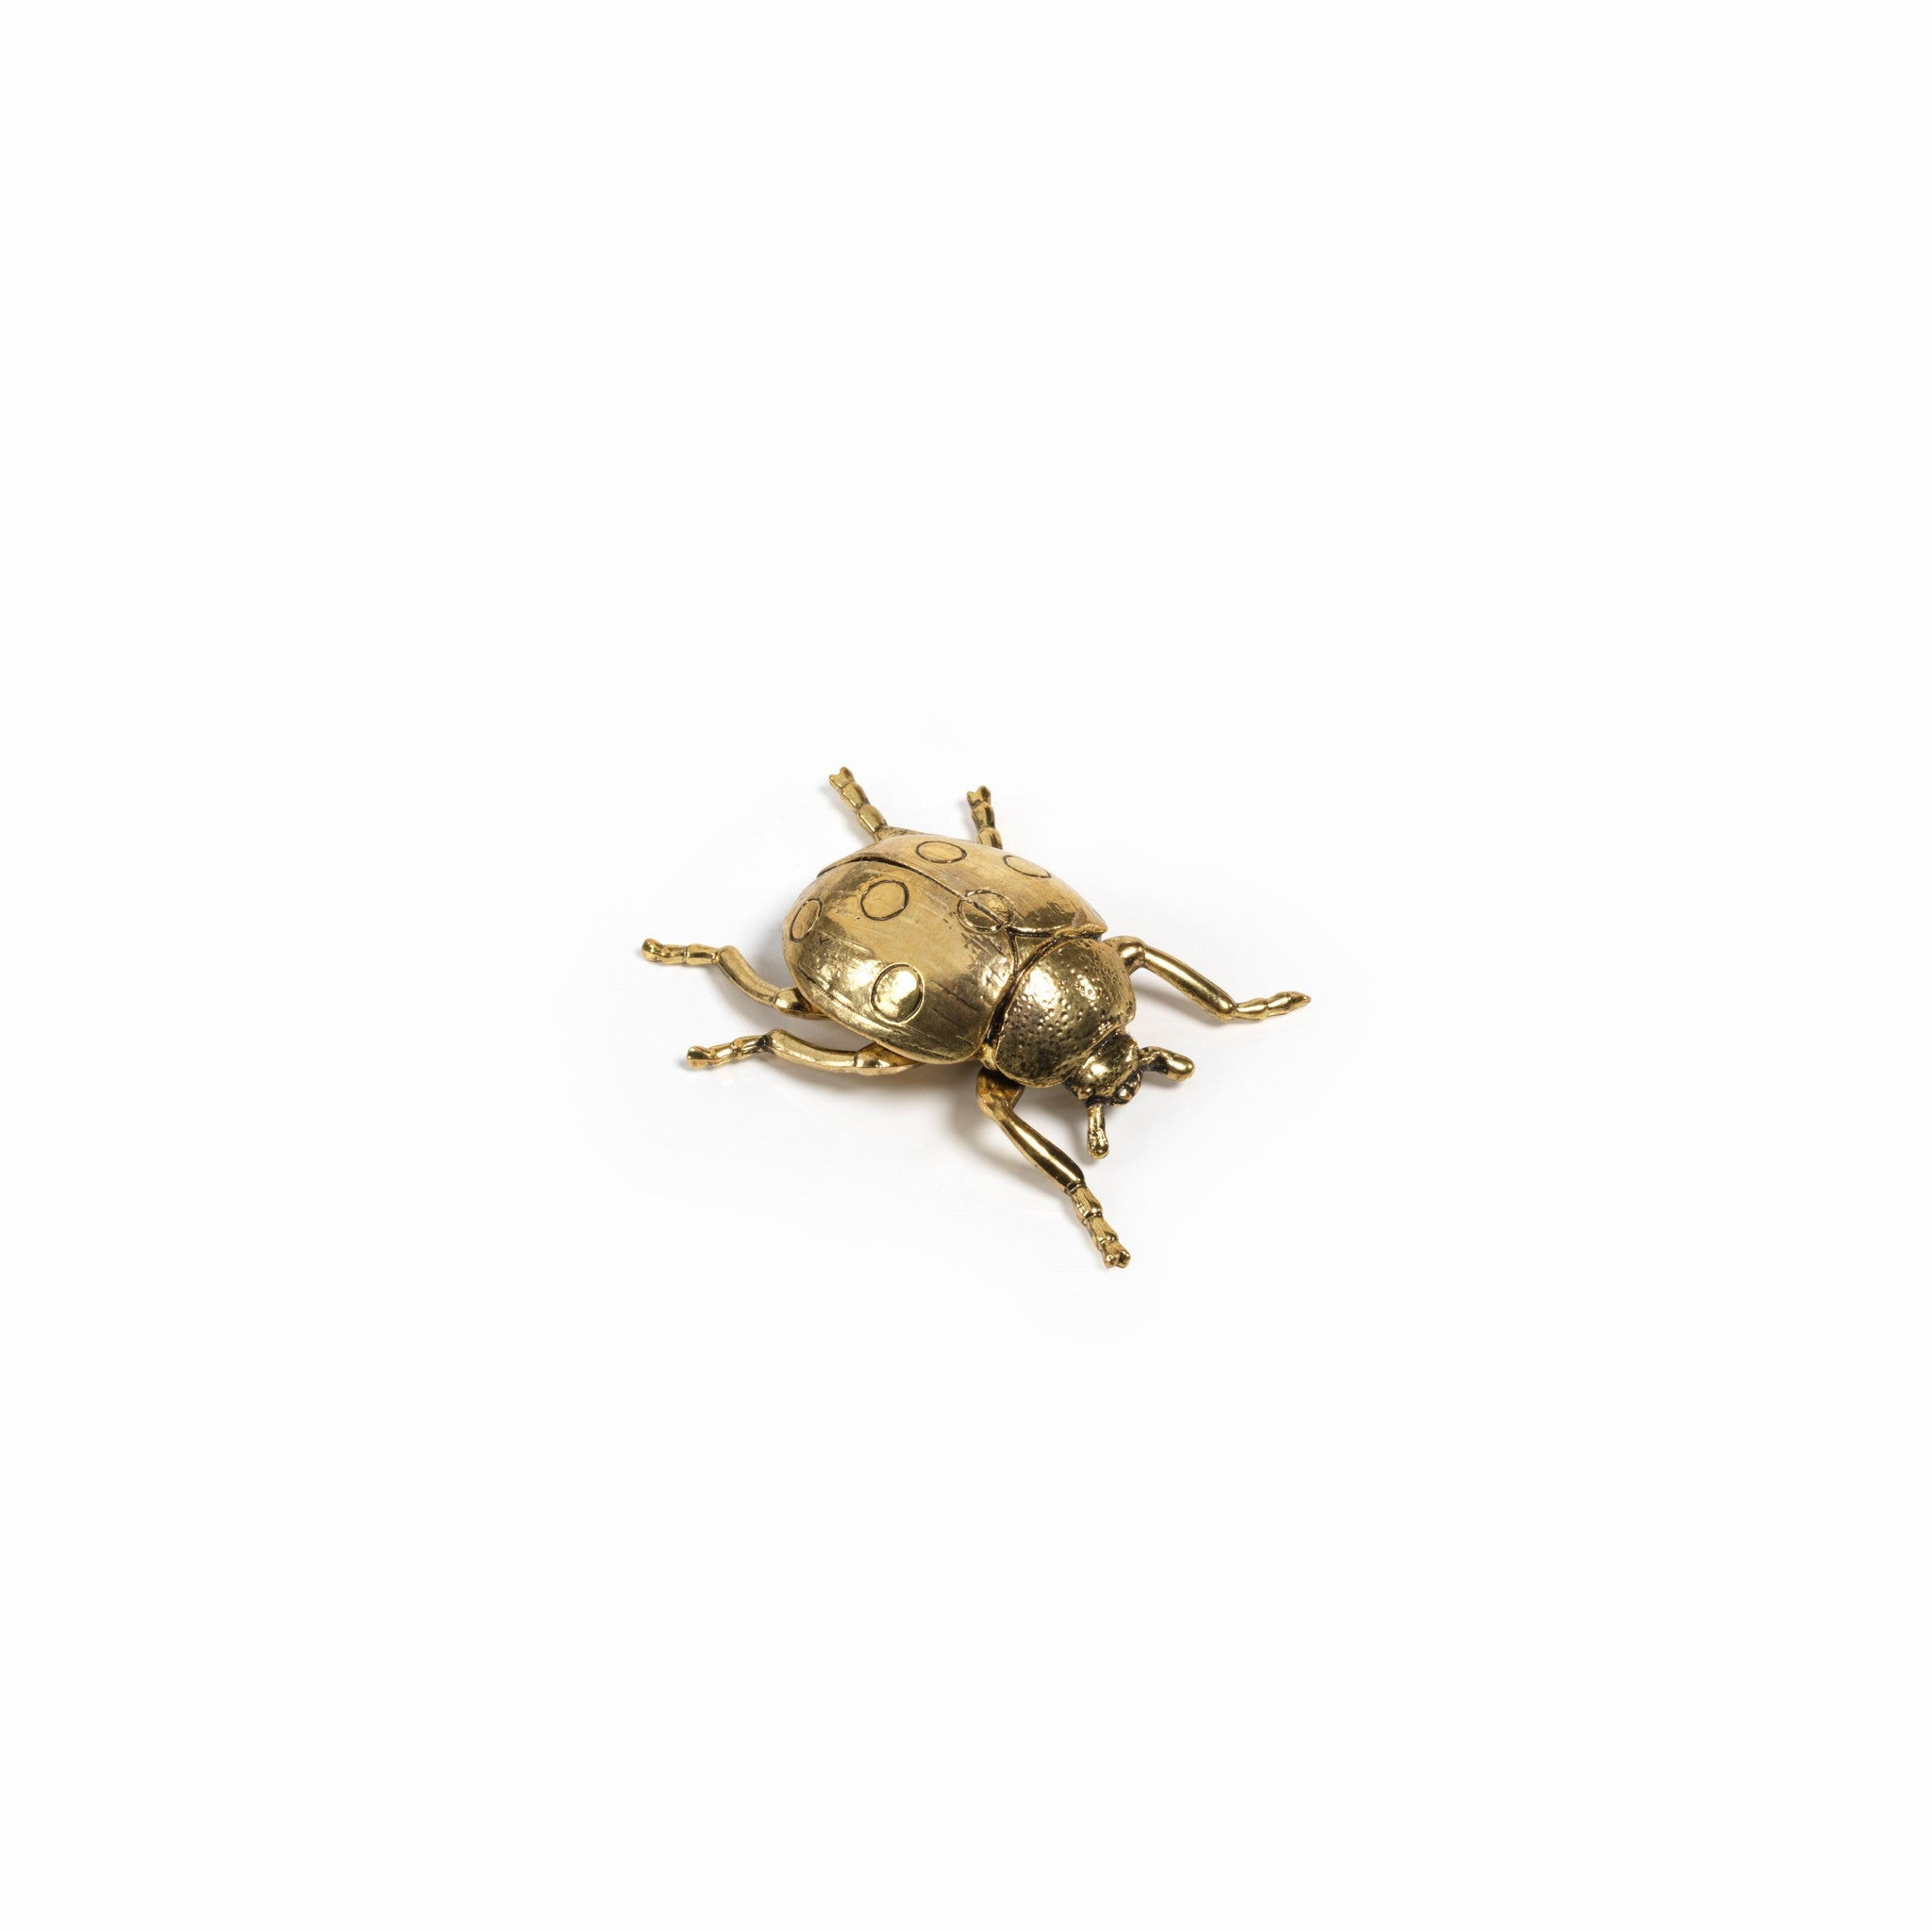 Decorative Gold Ladybug - CARLYLE AVENUE